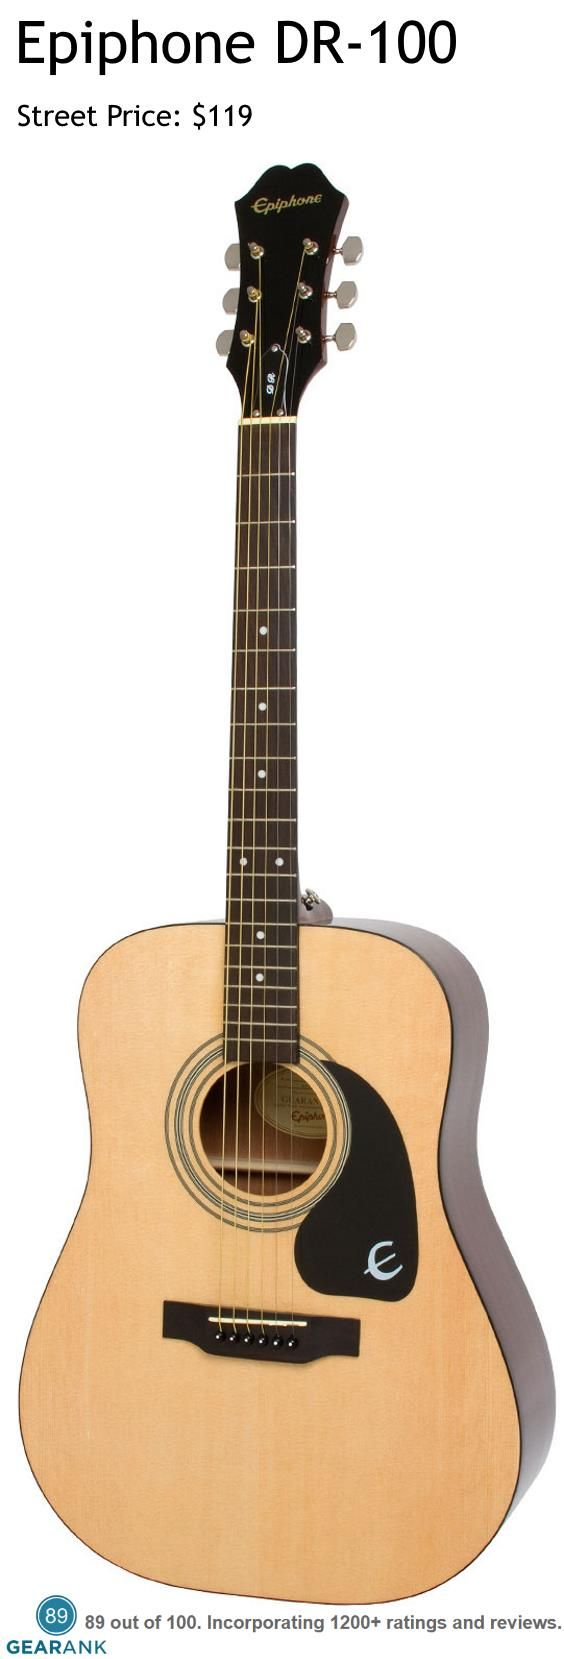 Epiphone Dr 100 This Is Epiphone S Top Selling Acoustic Guitar And Is Also One Of The Highest Rated Acoustic Gui Epiphone Best Acoustic Guitar Acoustic Guitar